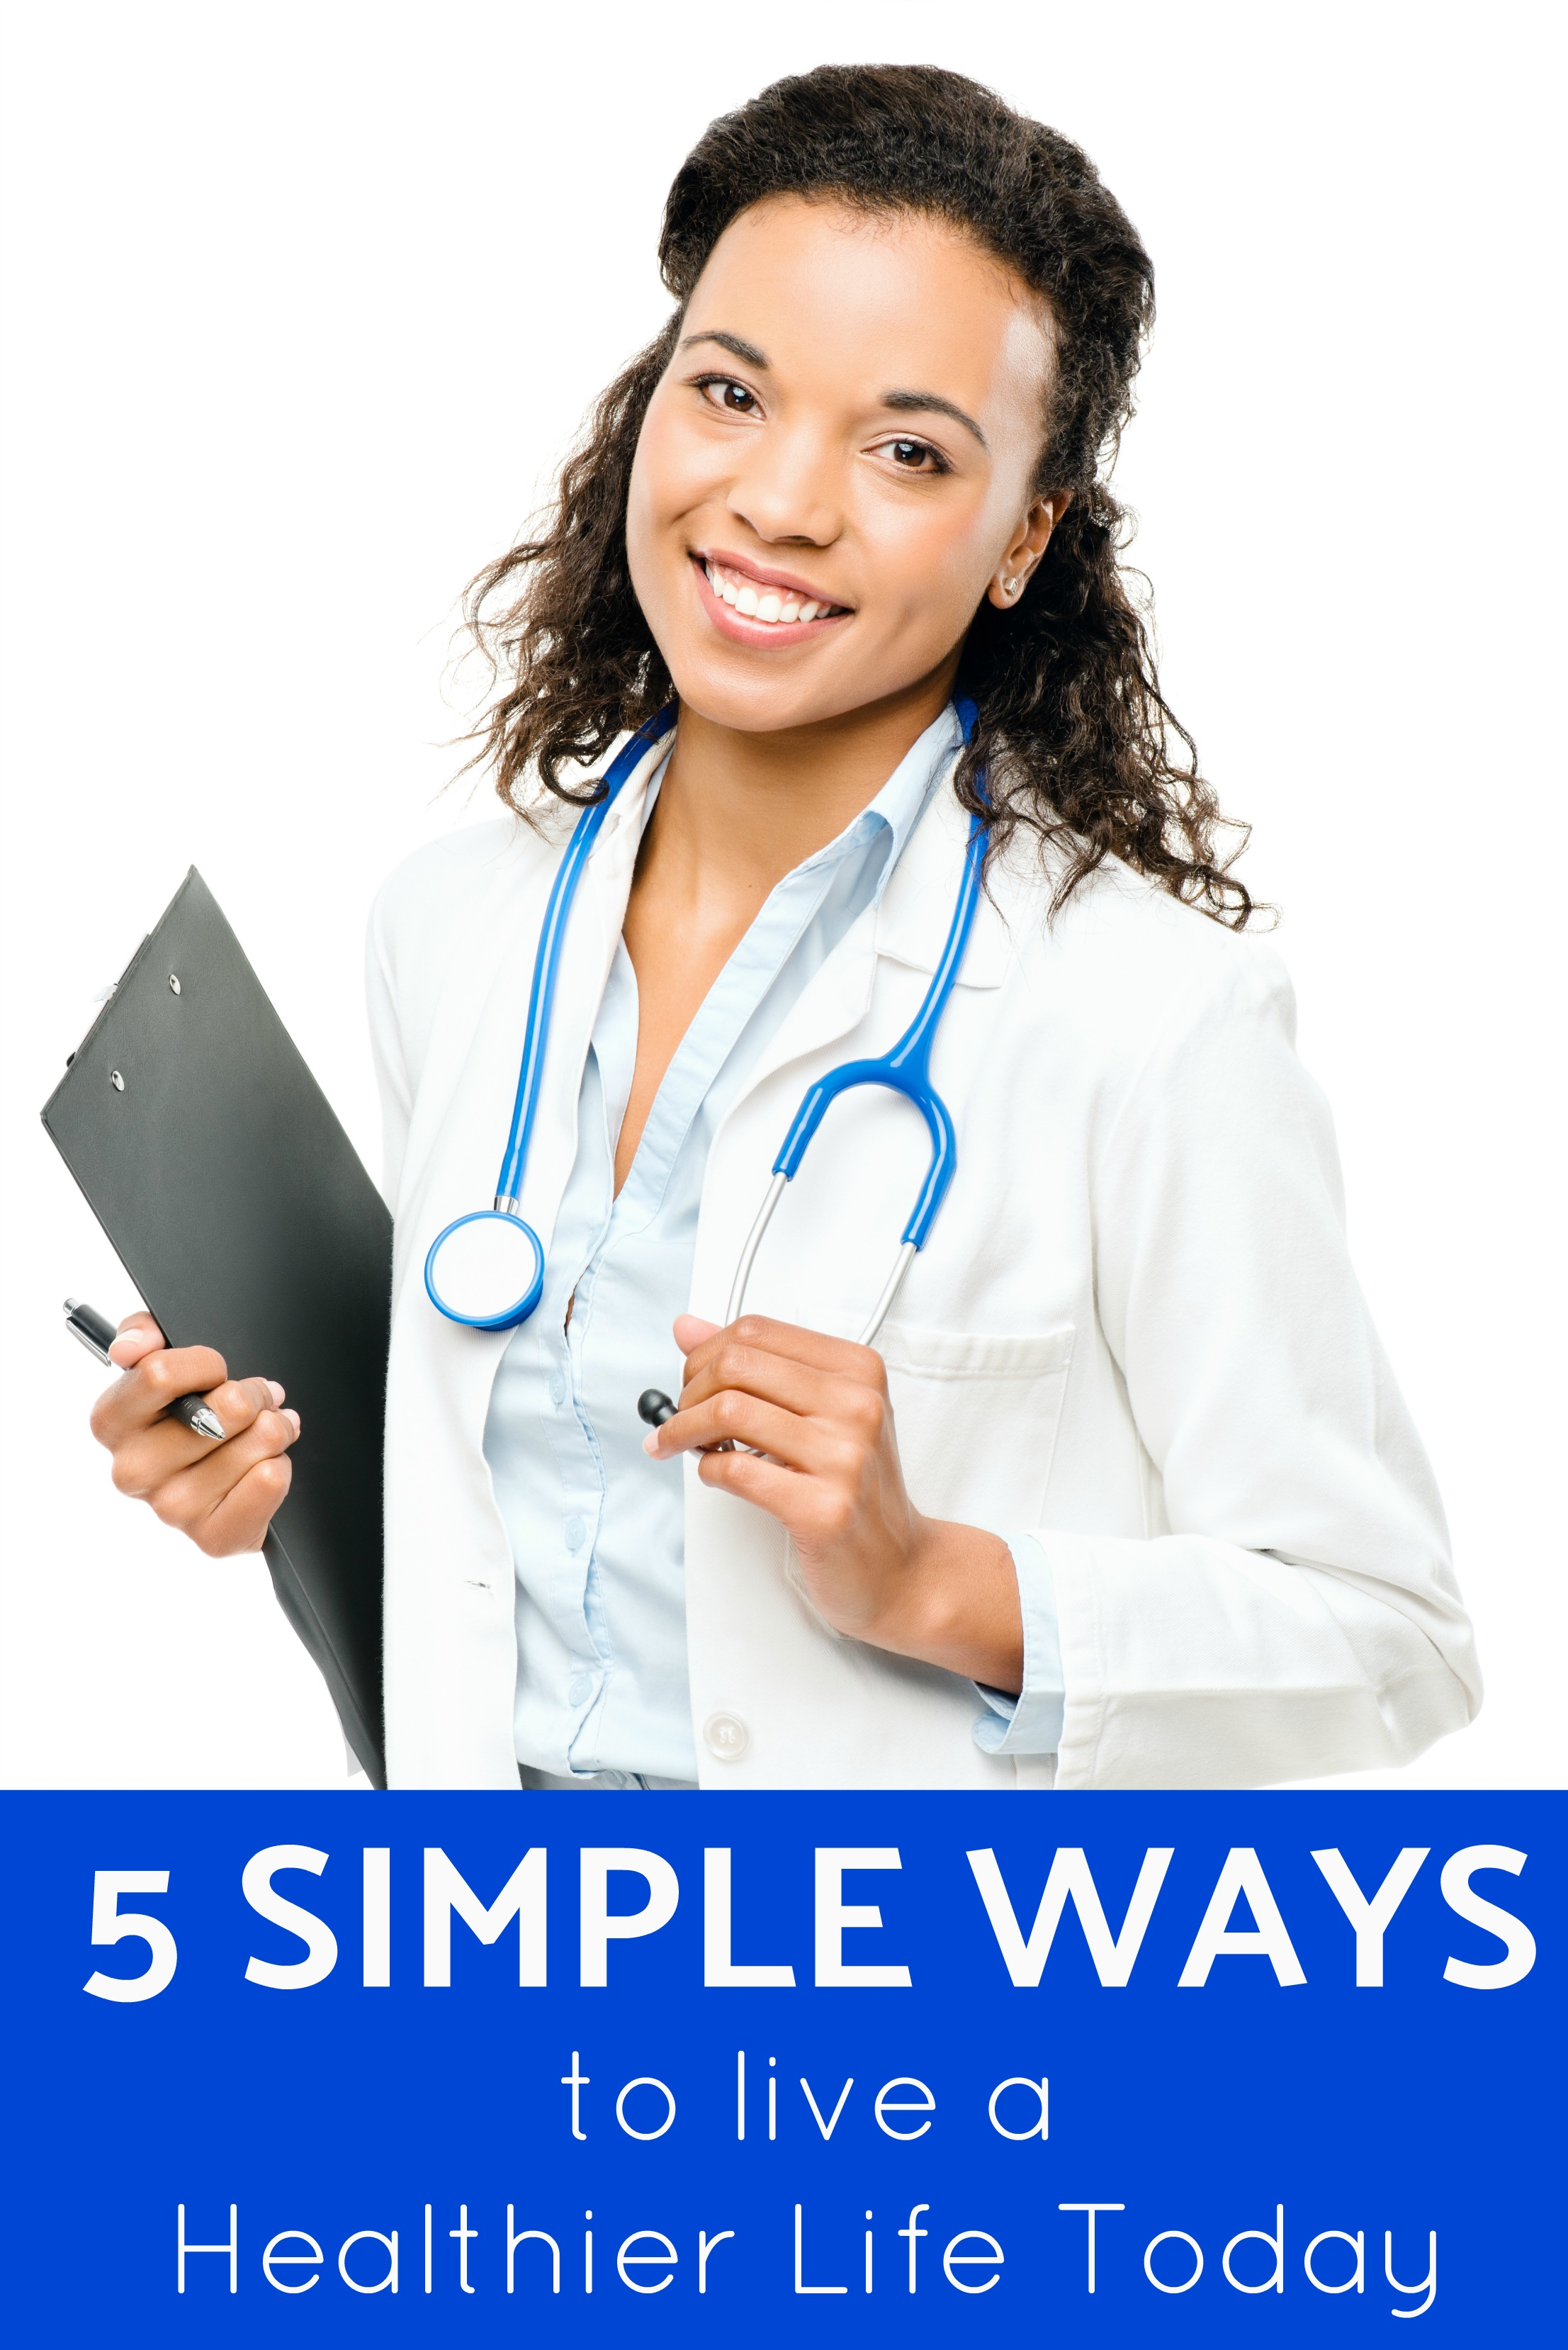 5 Simple Ways to Live a Healthier Life Today